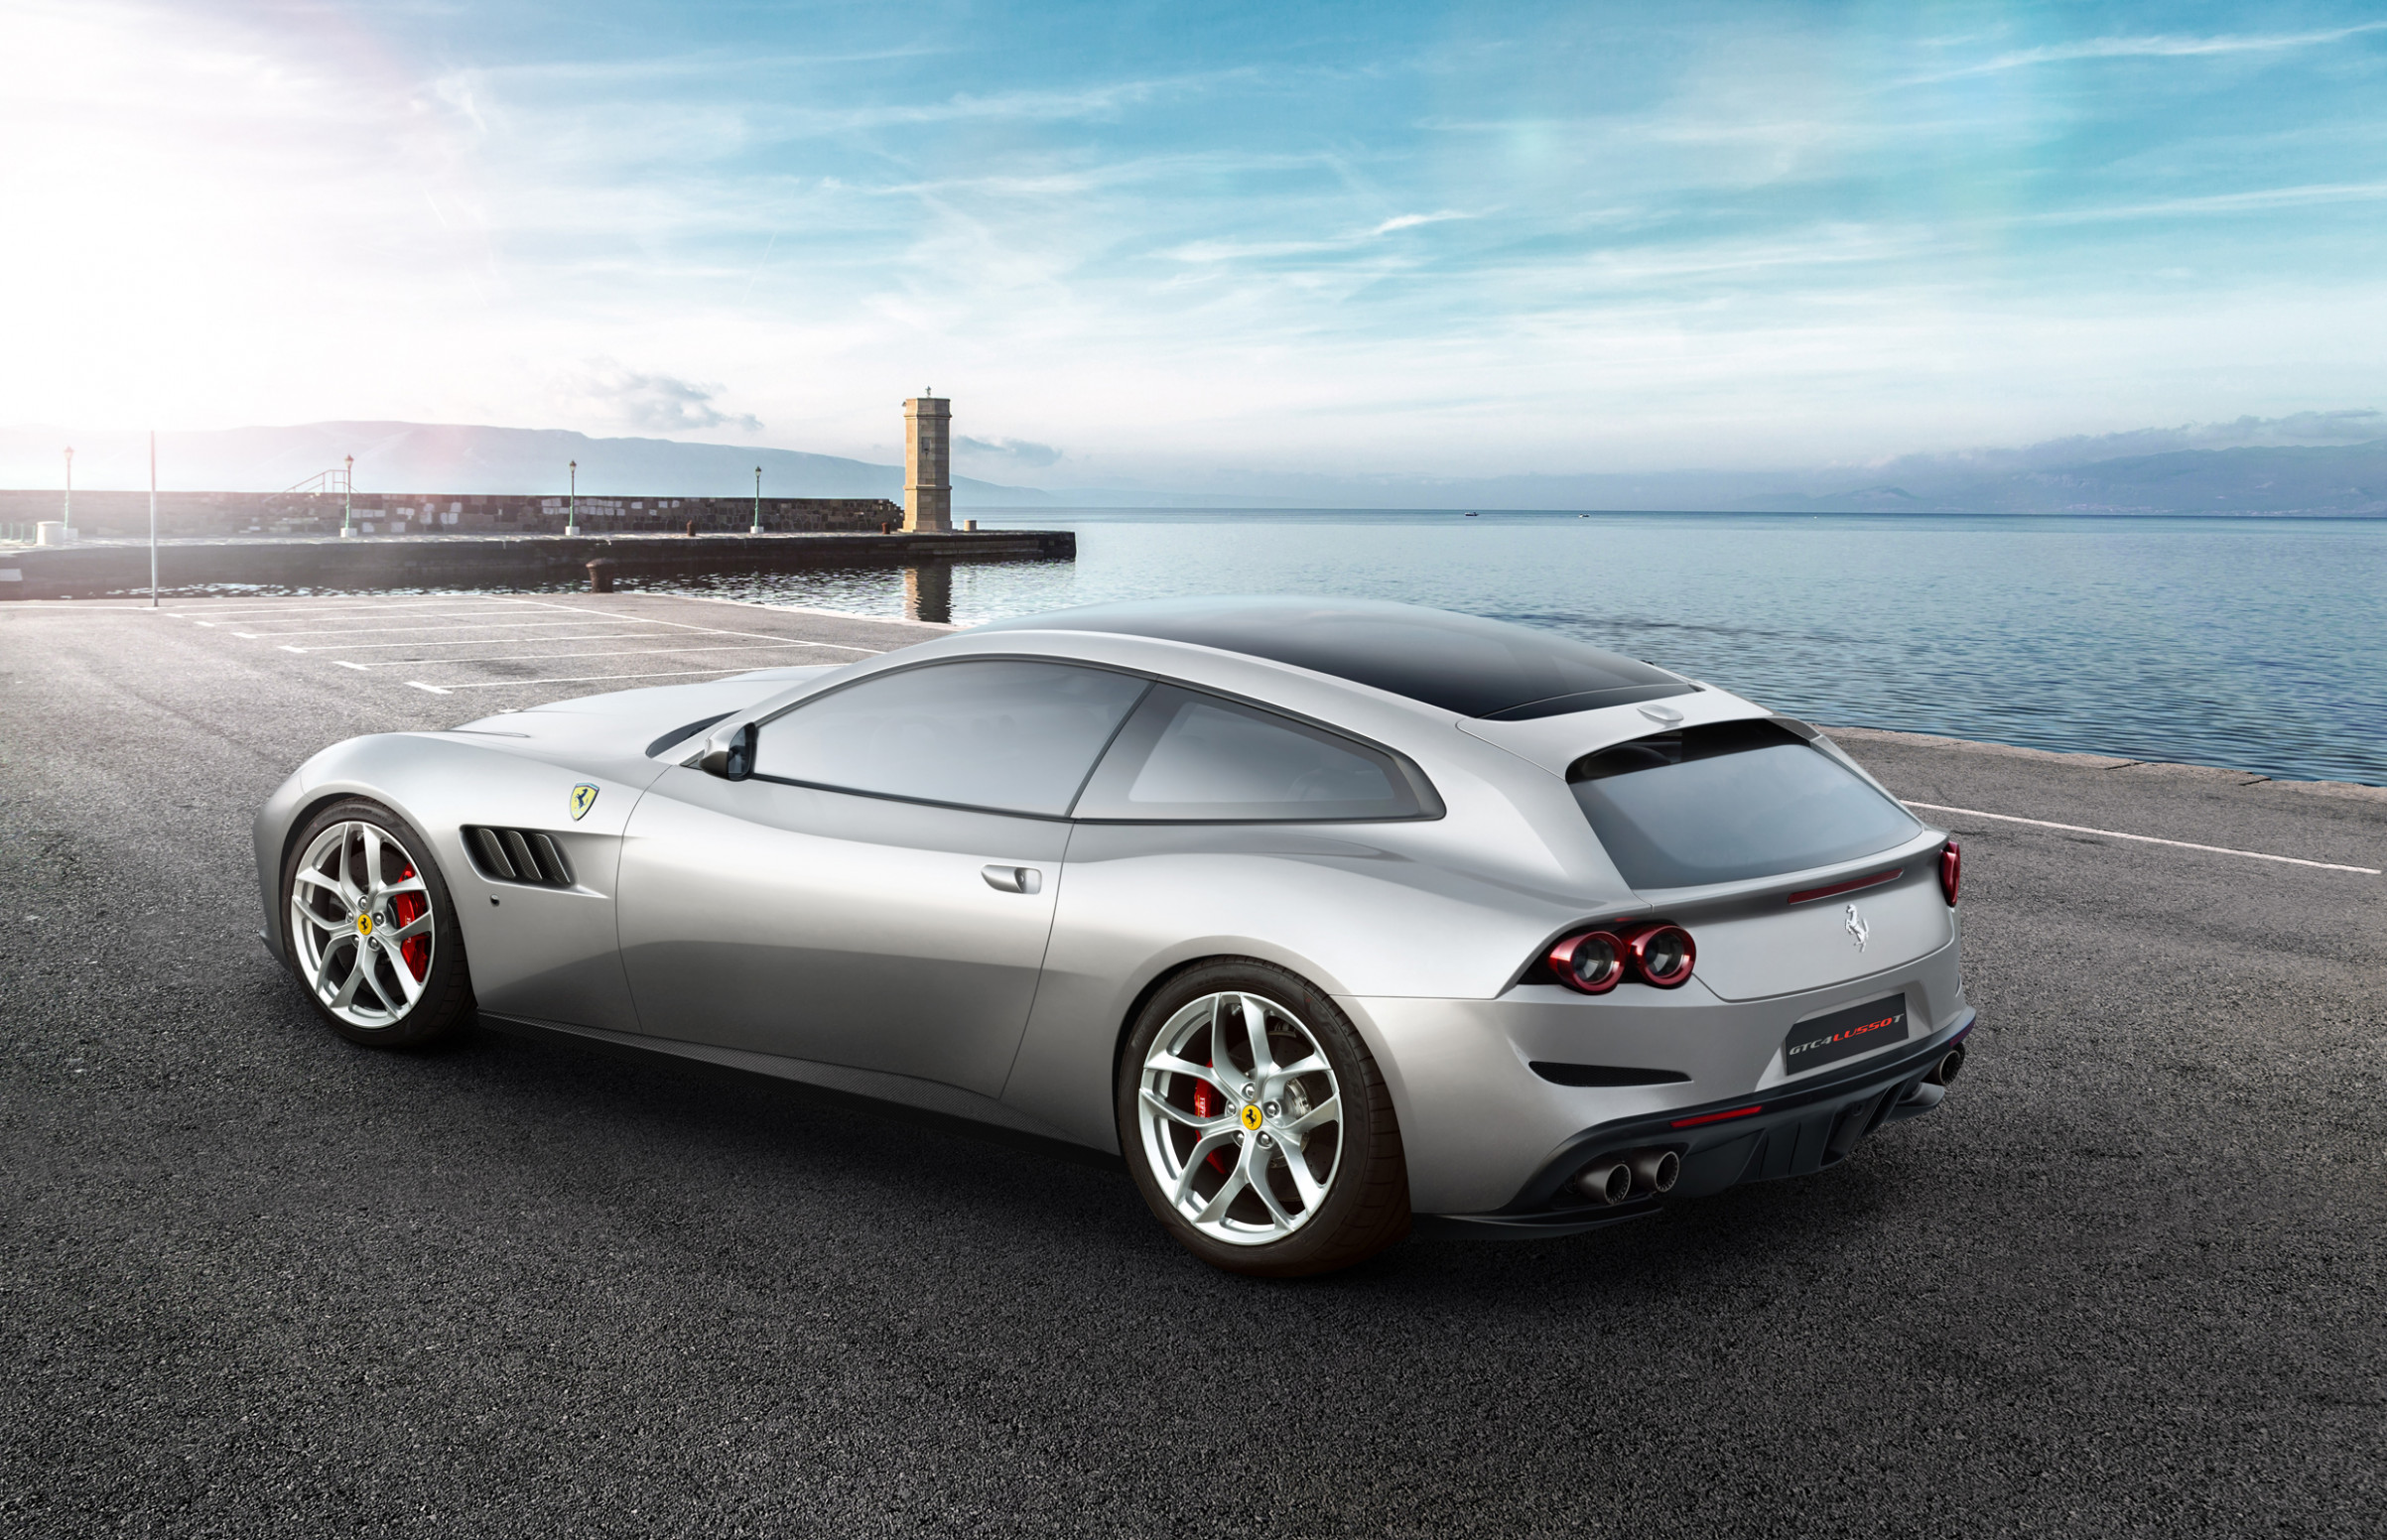 Ferrari GTC8Lusso 8 - View Specs, Prices, Photos & More | Driving